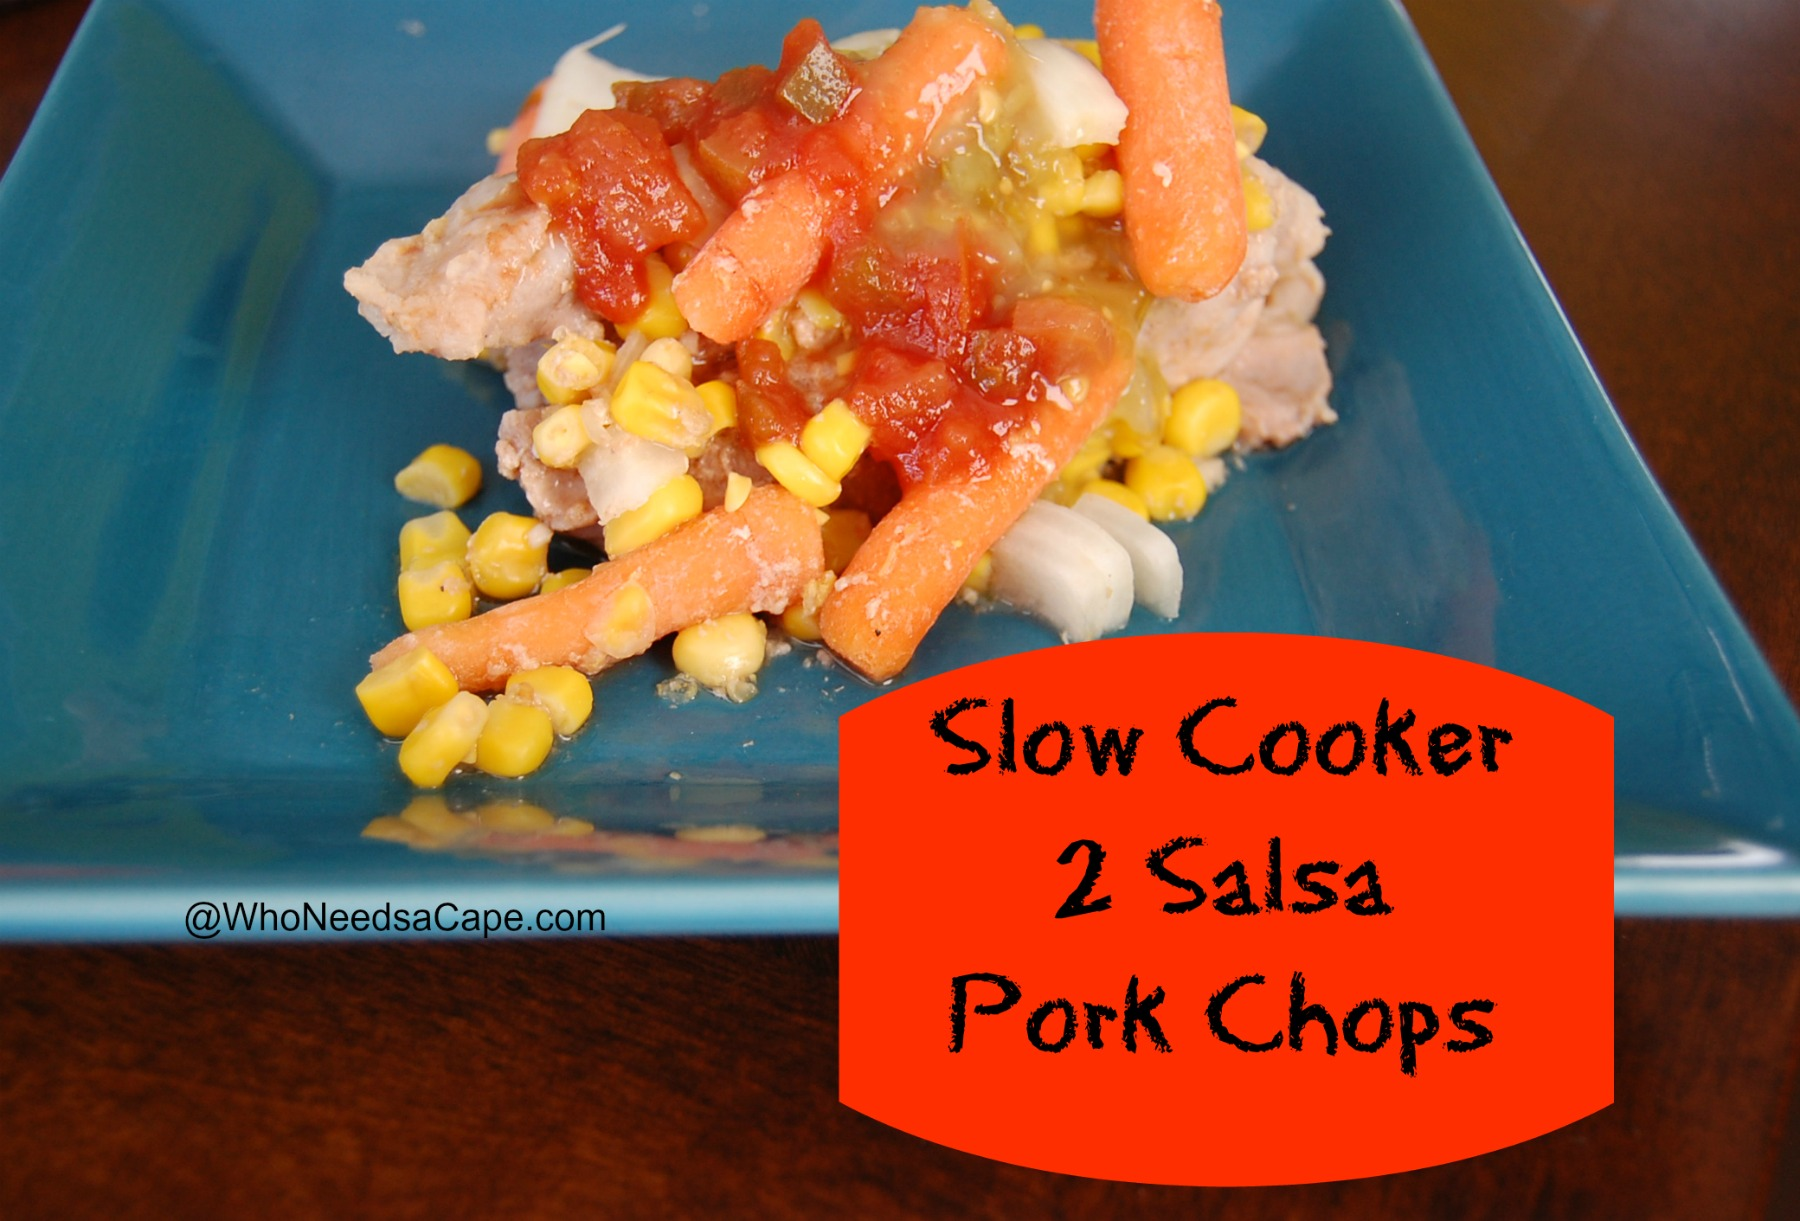 Slow Cooker 2 Salsa Pork Chops - Who Needs A Cape?